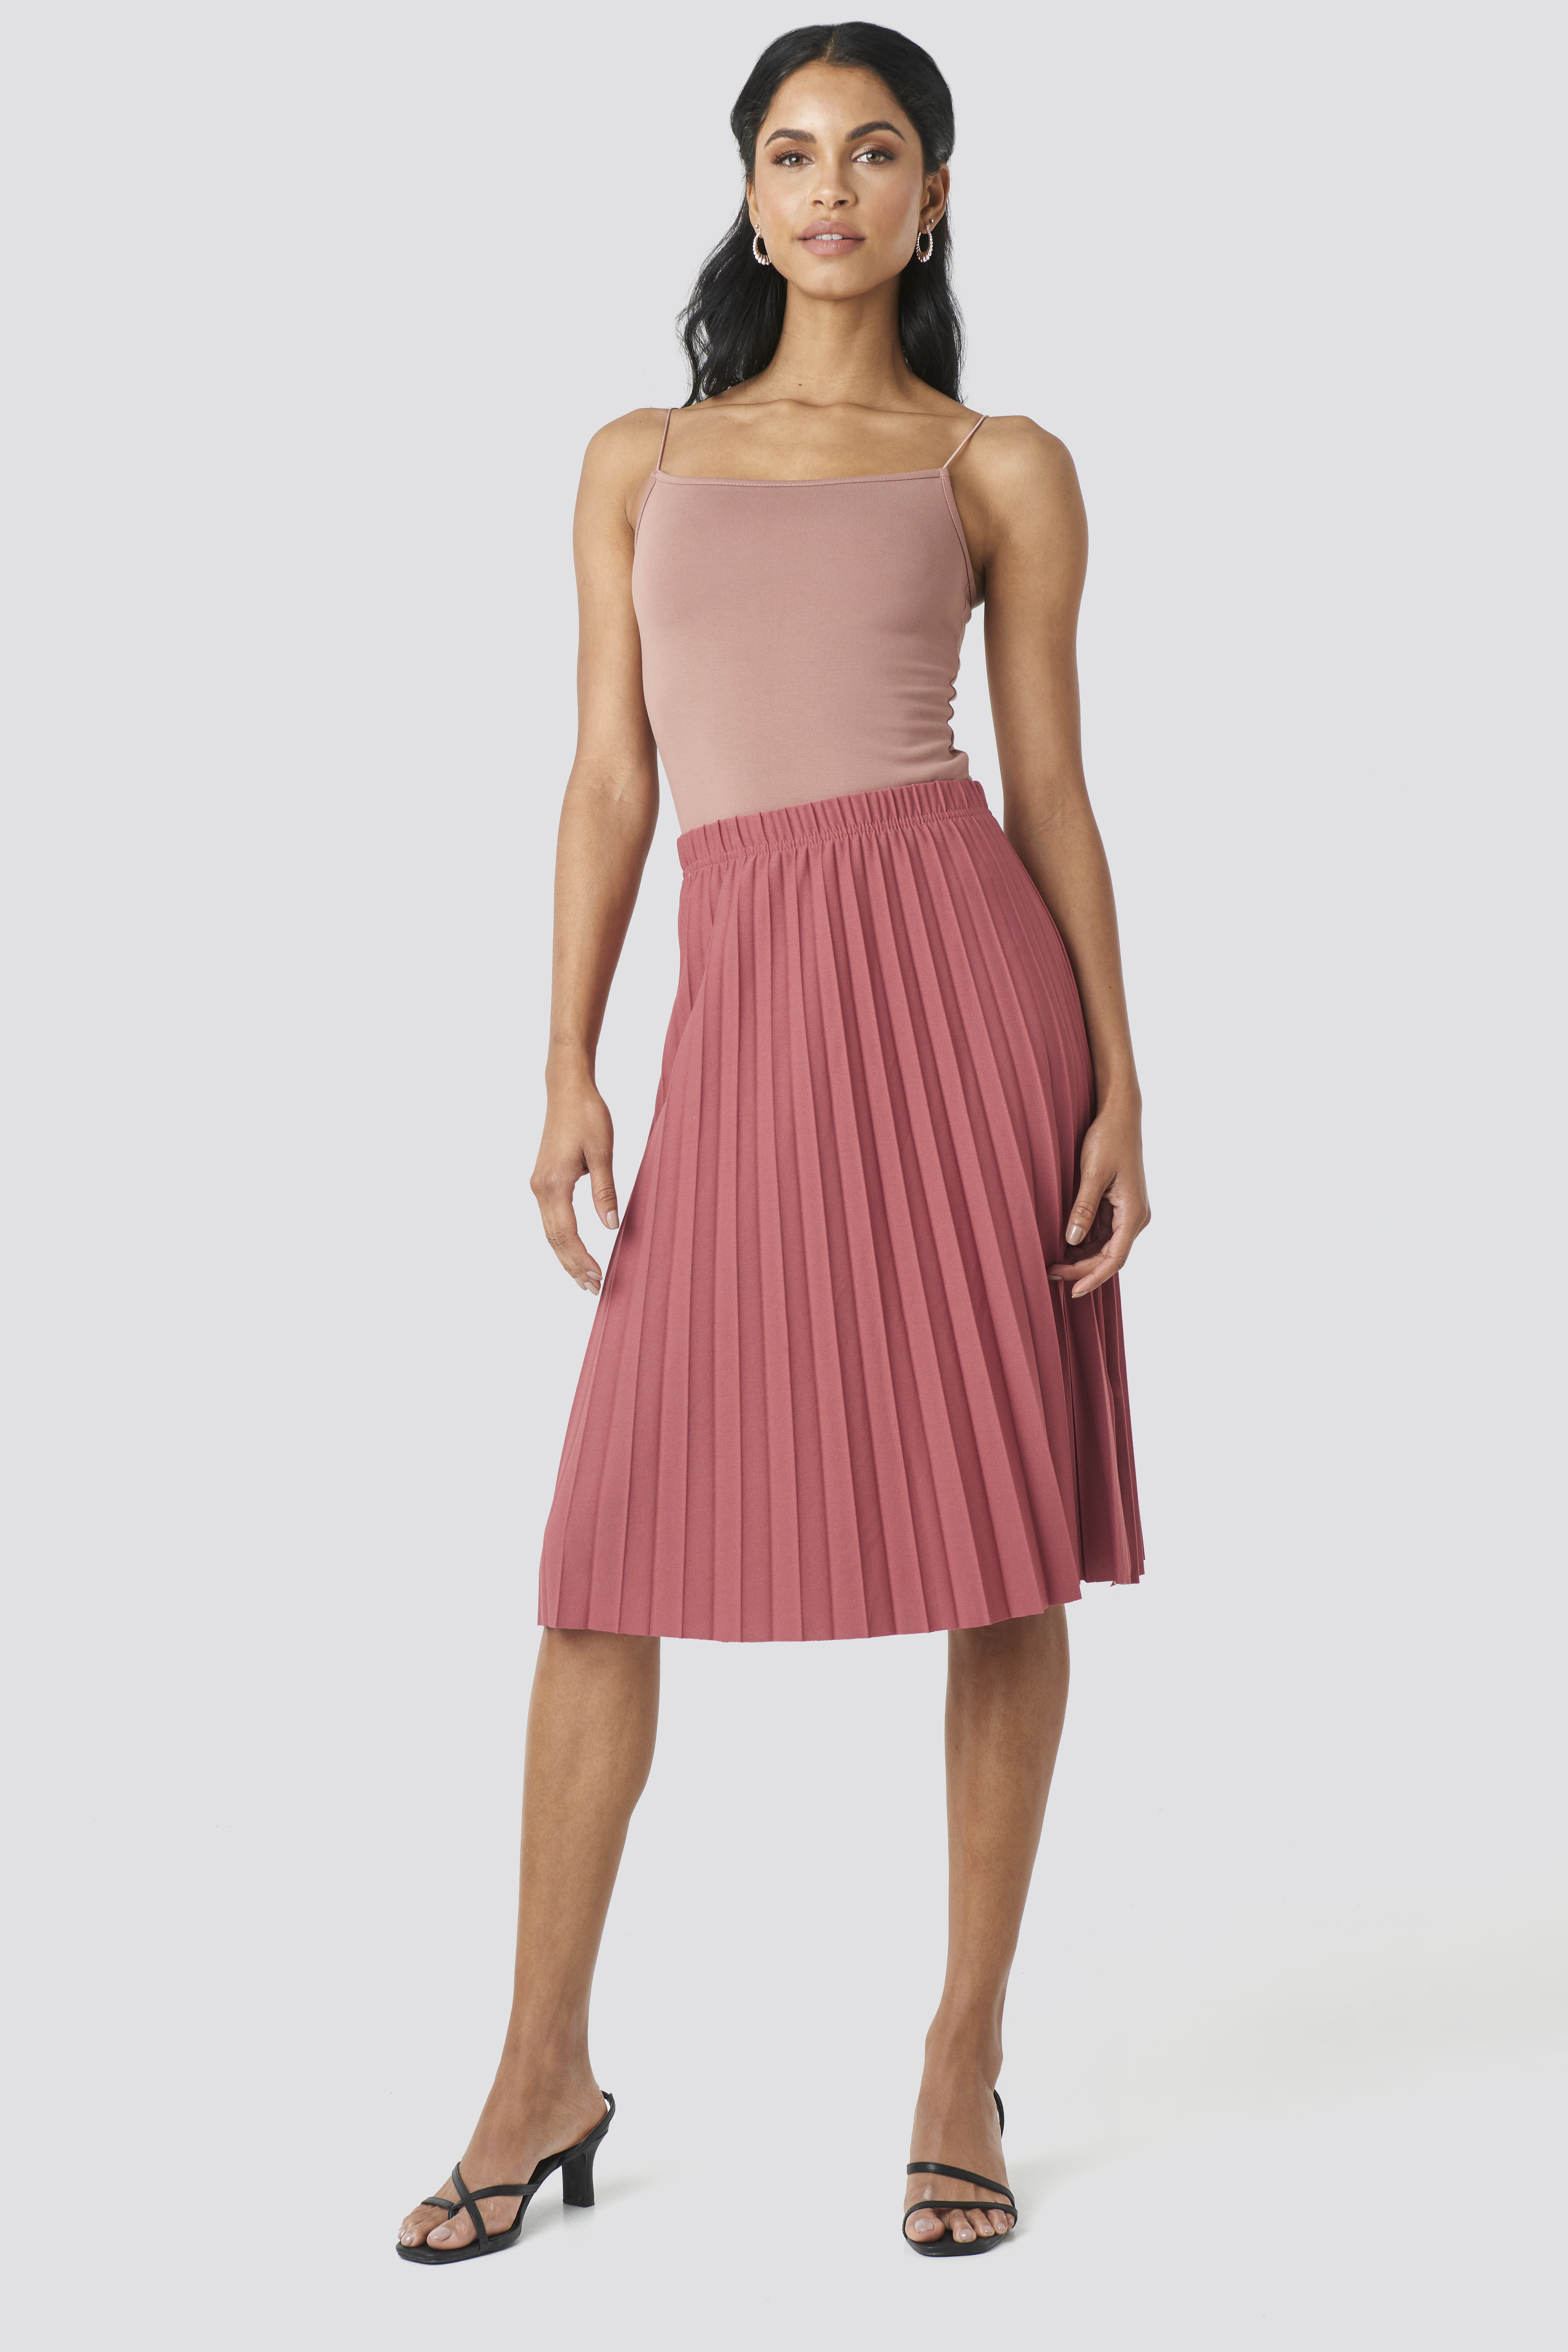 biggest discount buying now authorized site Yol Pleated Midi Skirt Pink in Dusty Rose